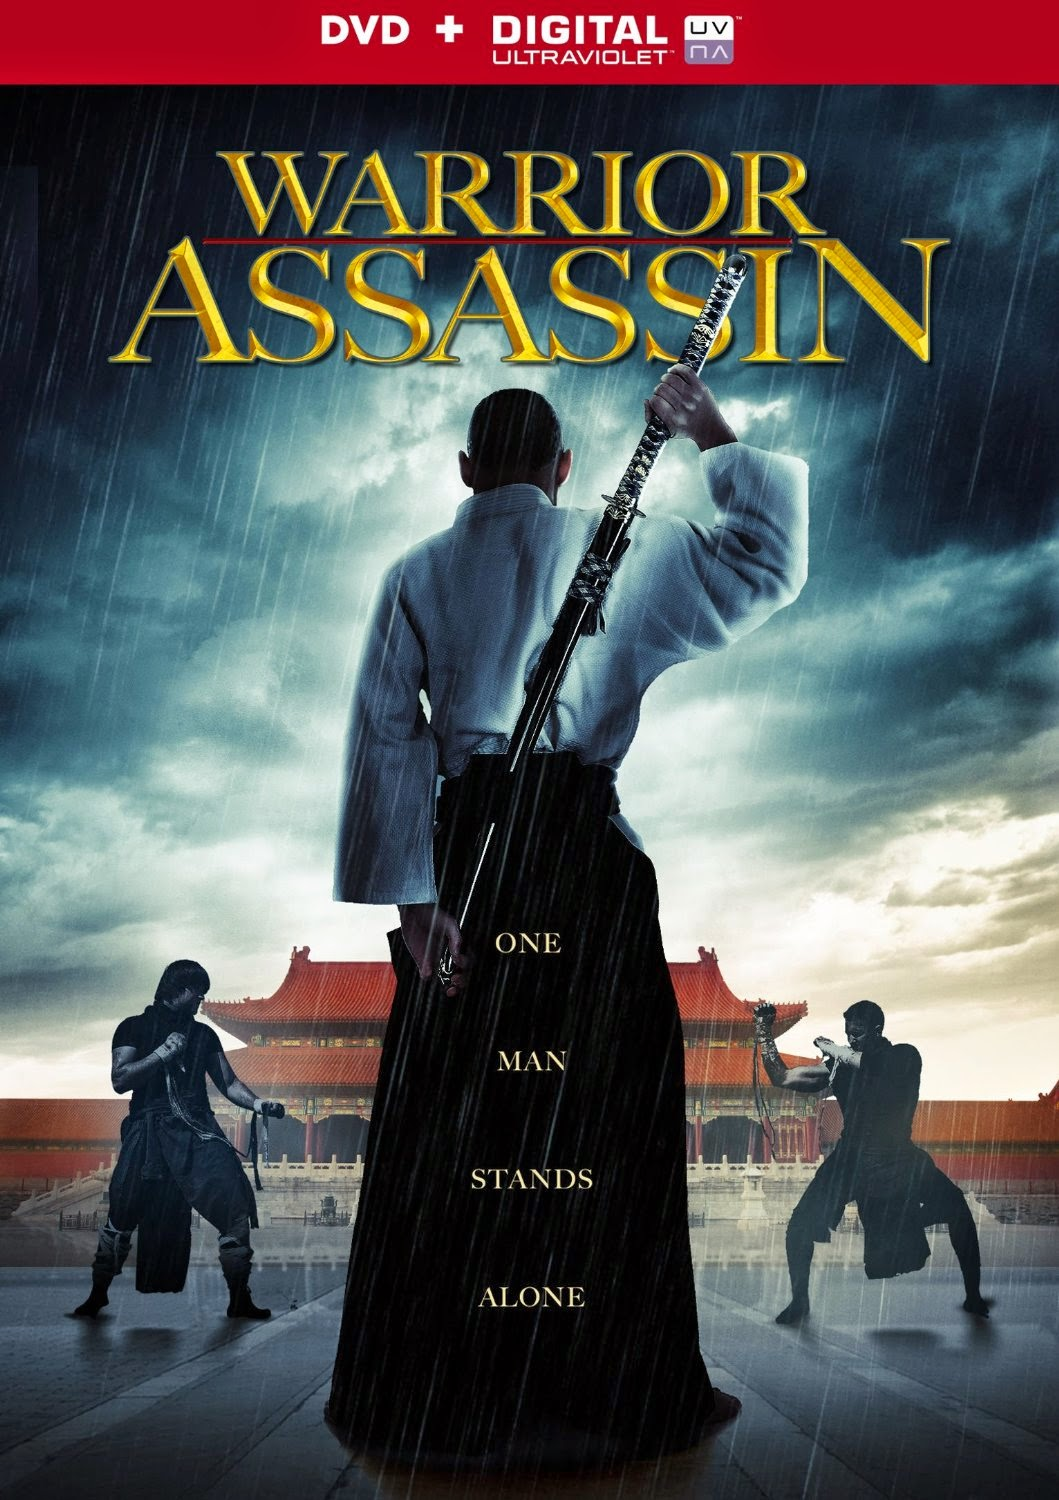 Warrior Assassin (2013) DVD